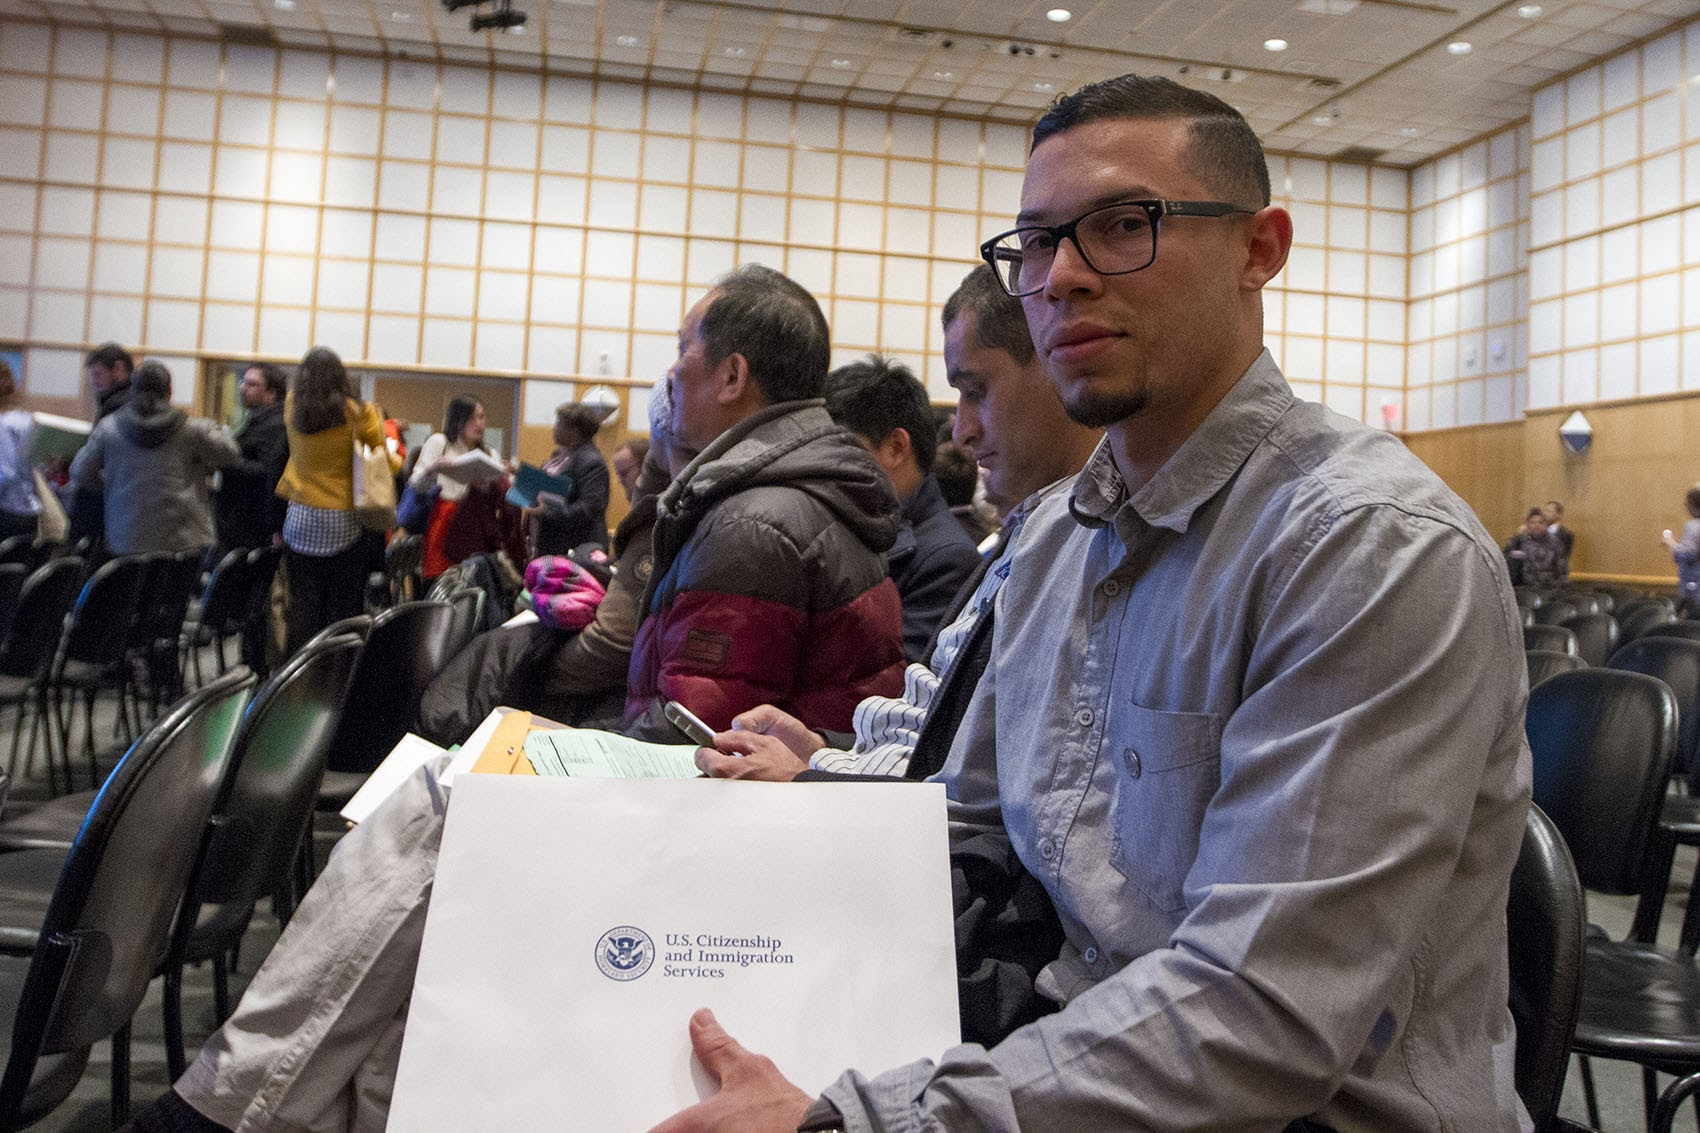 As Immigrants In Boston Take Citizenship Oaths, Many Feel Greater